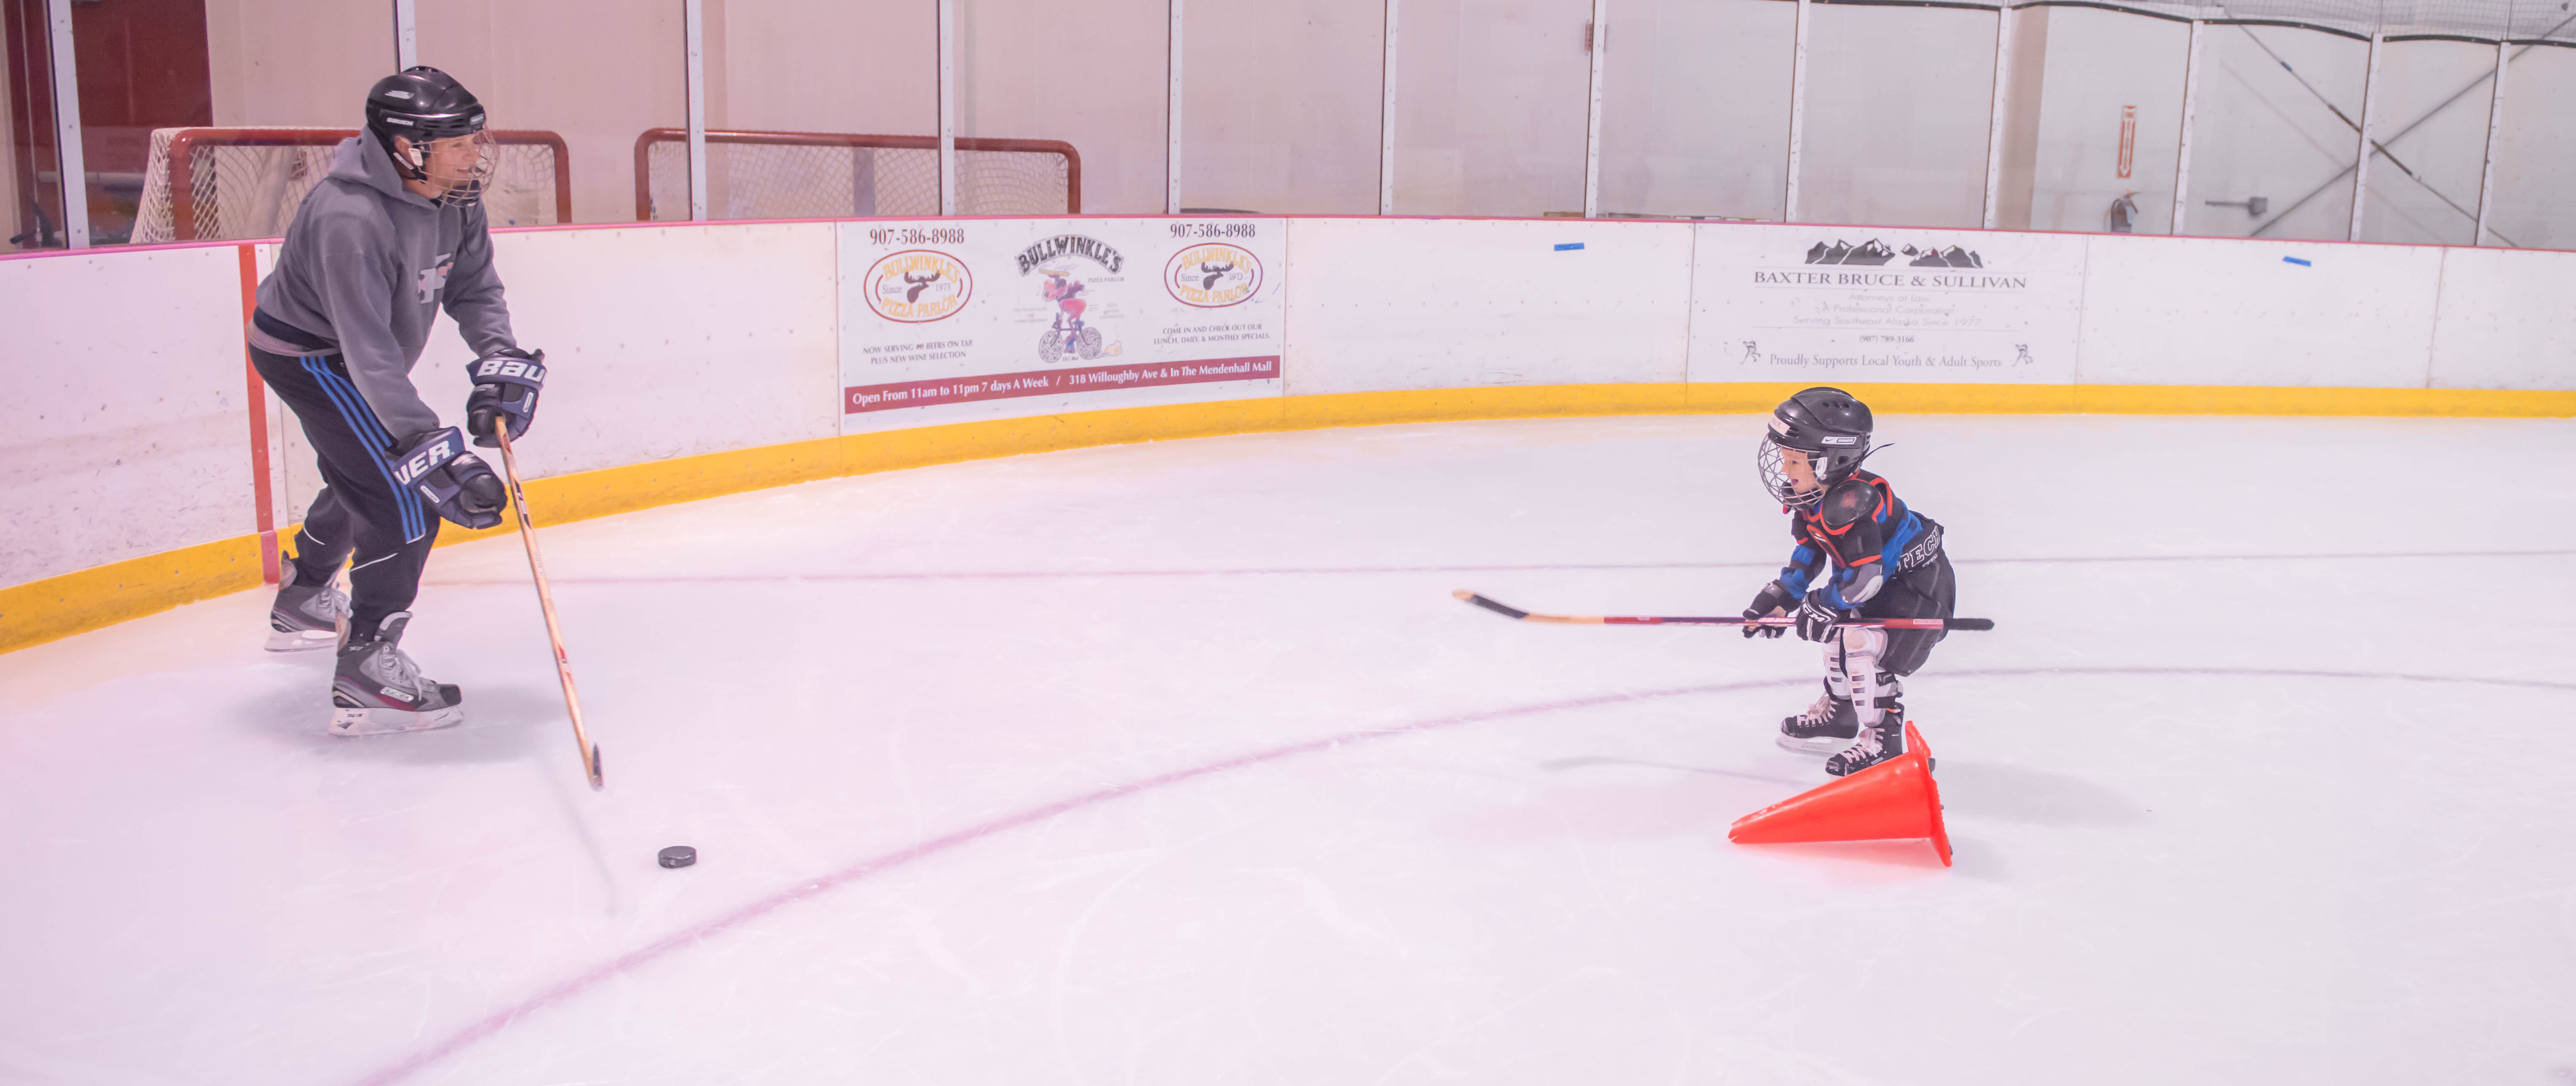 Randy Host (left) enjoys some ice time with his son Mack at JDIA's Learn to Play afternoon at Treadwell Ice Arena. (Photo by Steve Quinn)